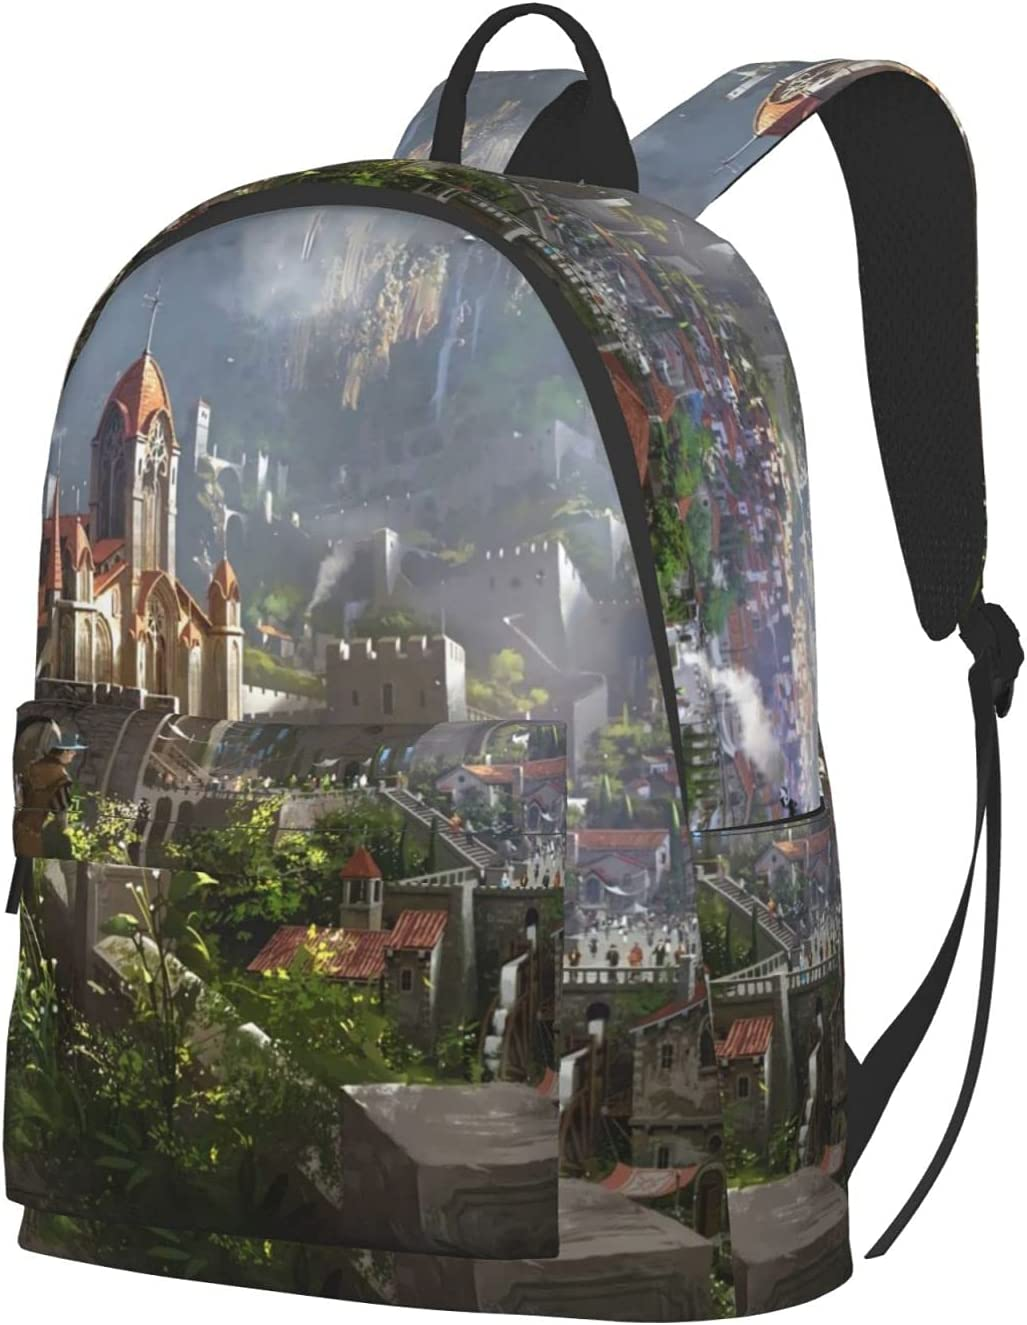 Large Capacity Quality inspection Backpack Water-Resistant Purse Small Sho Excellence